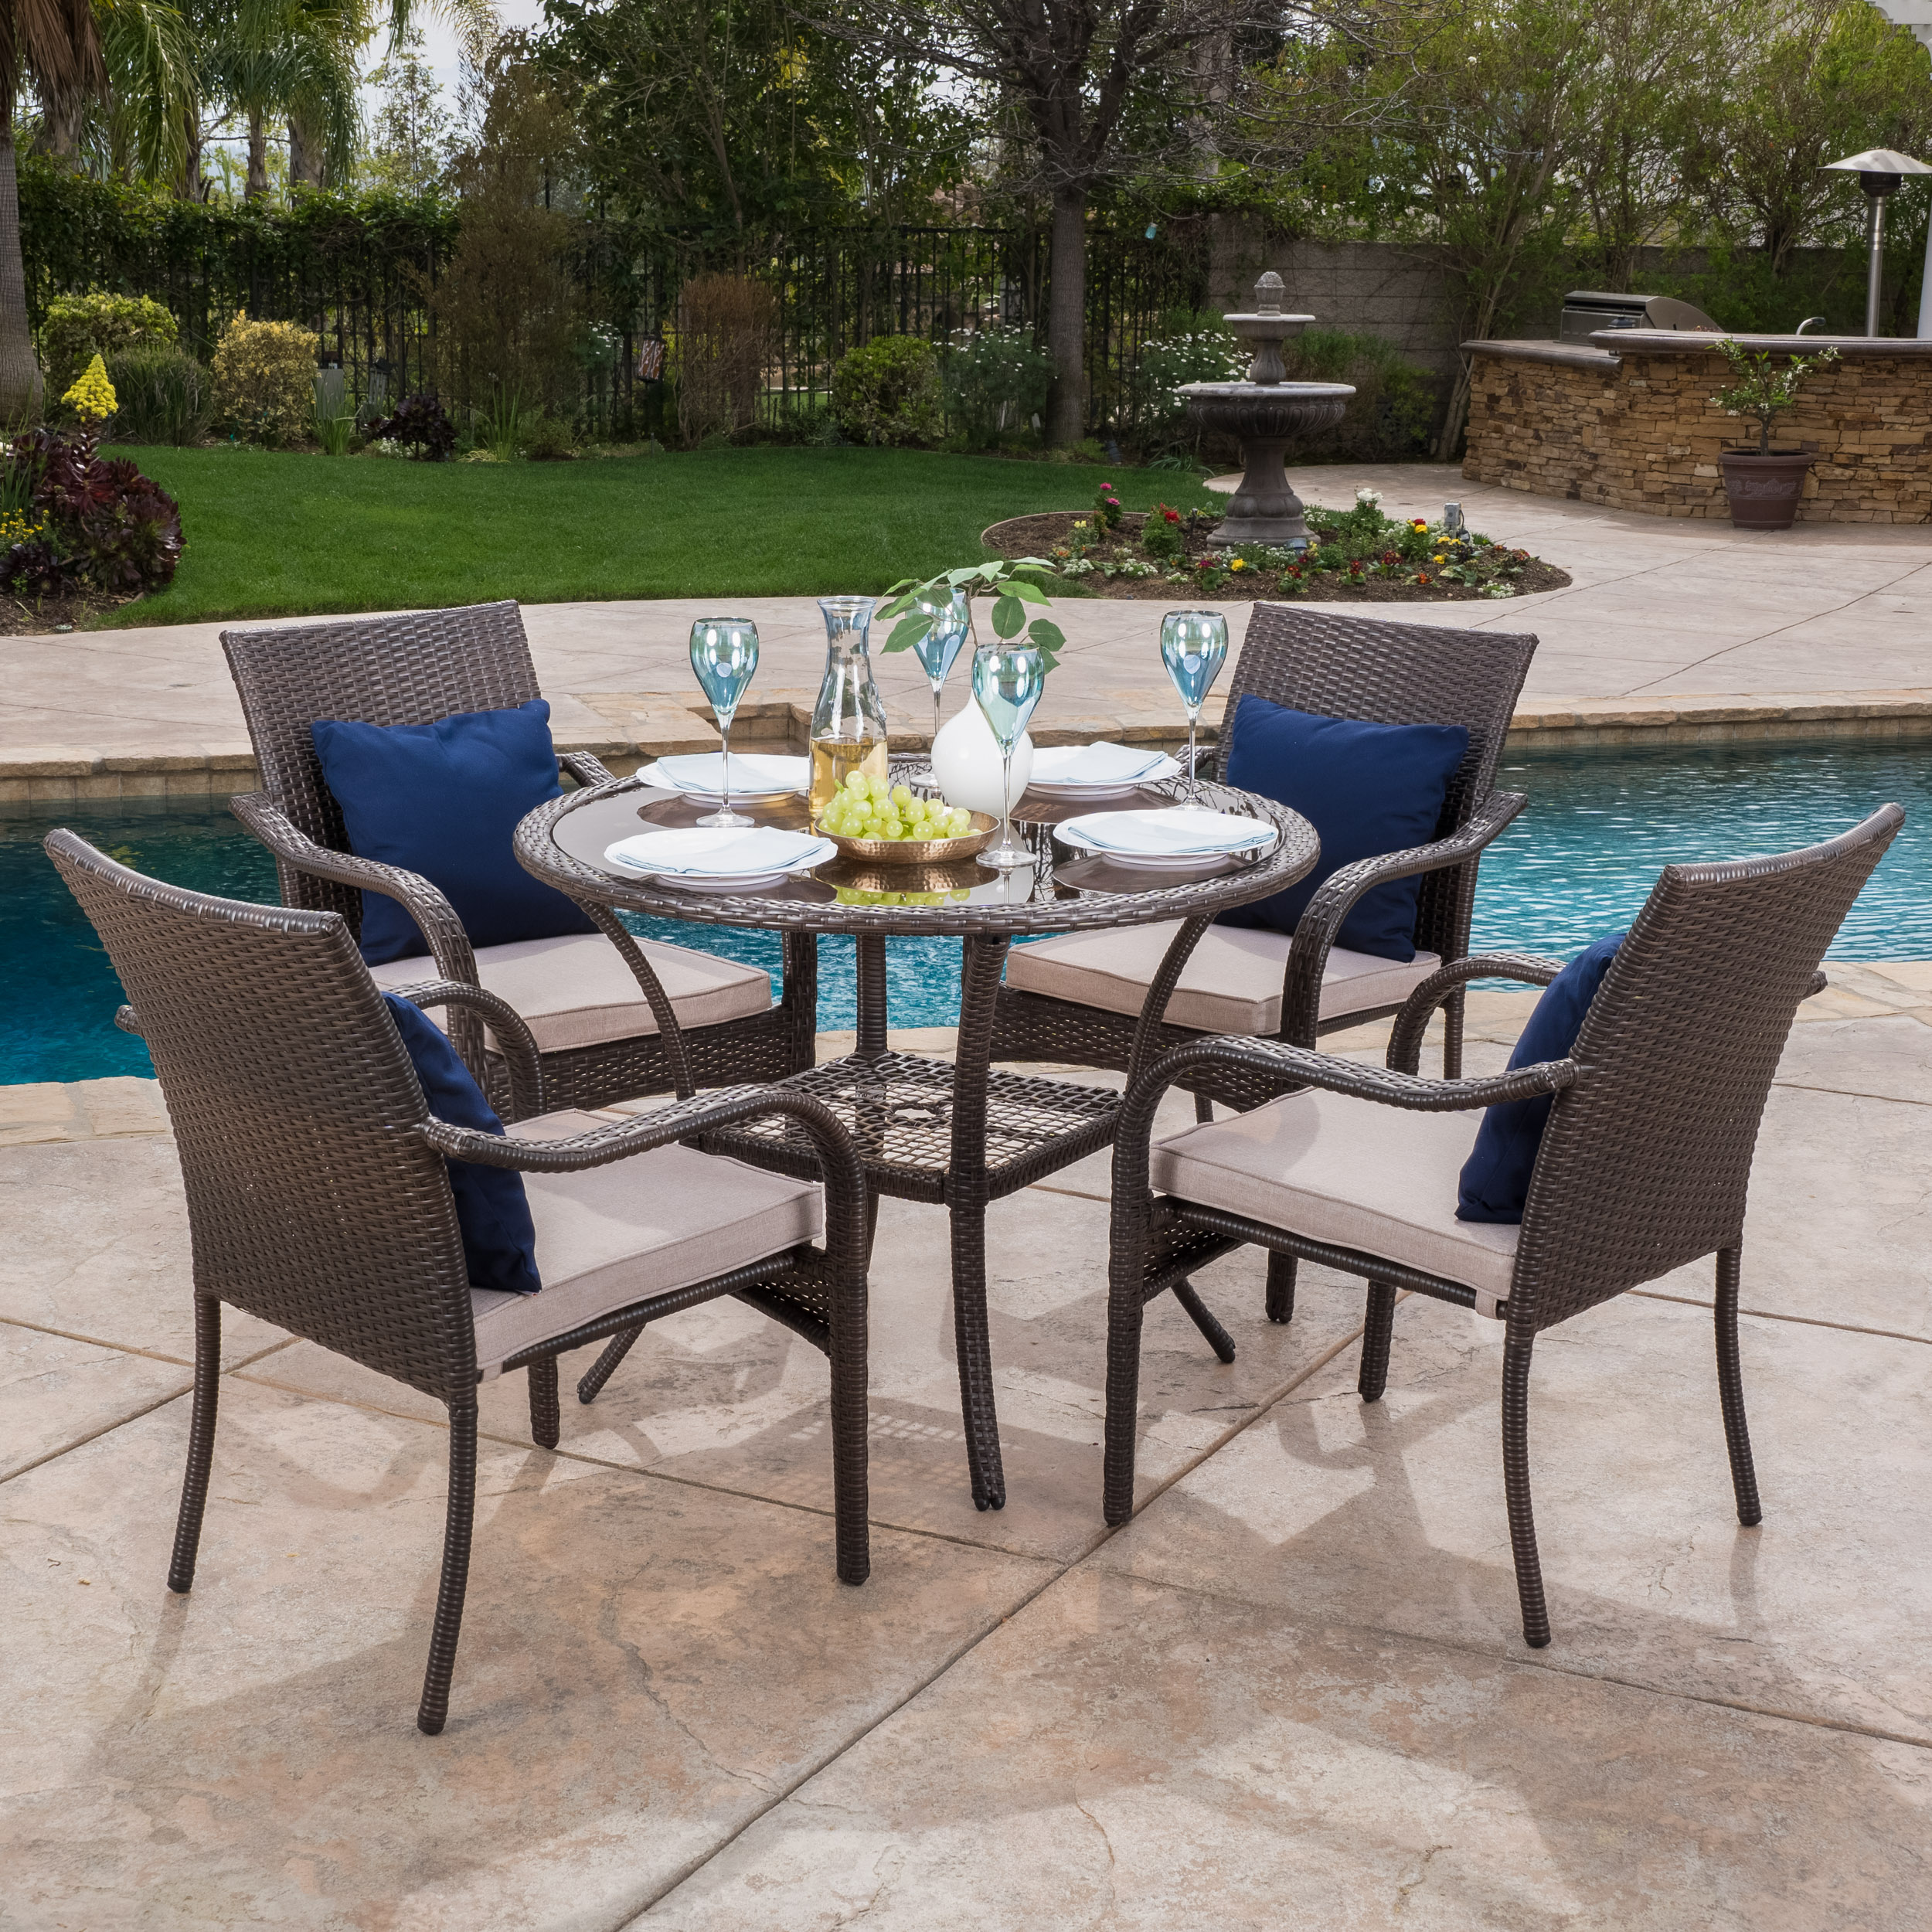 Carol 5 Piece Outdoor Dining Set, Multibrown, Beige